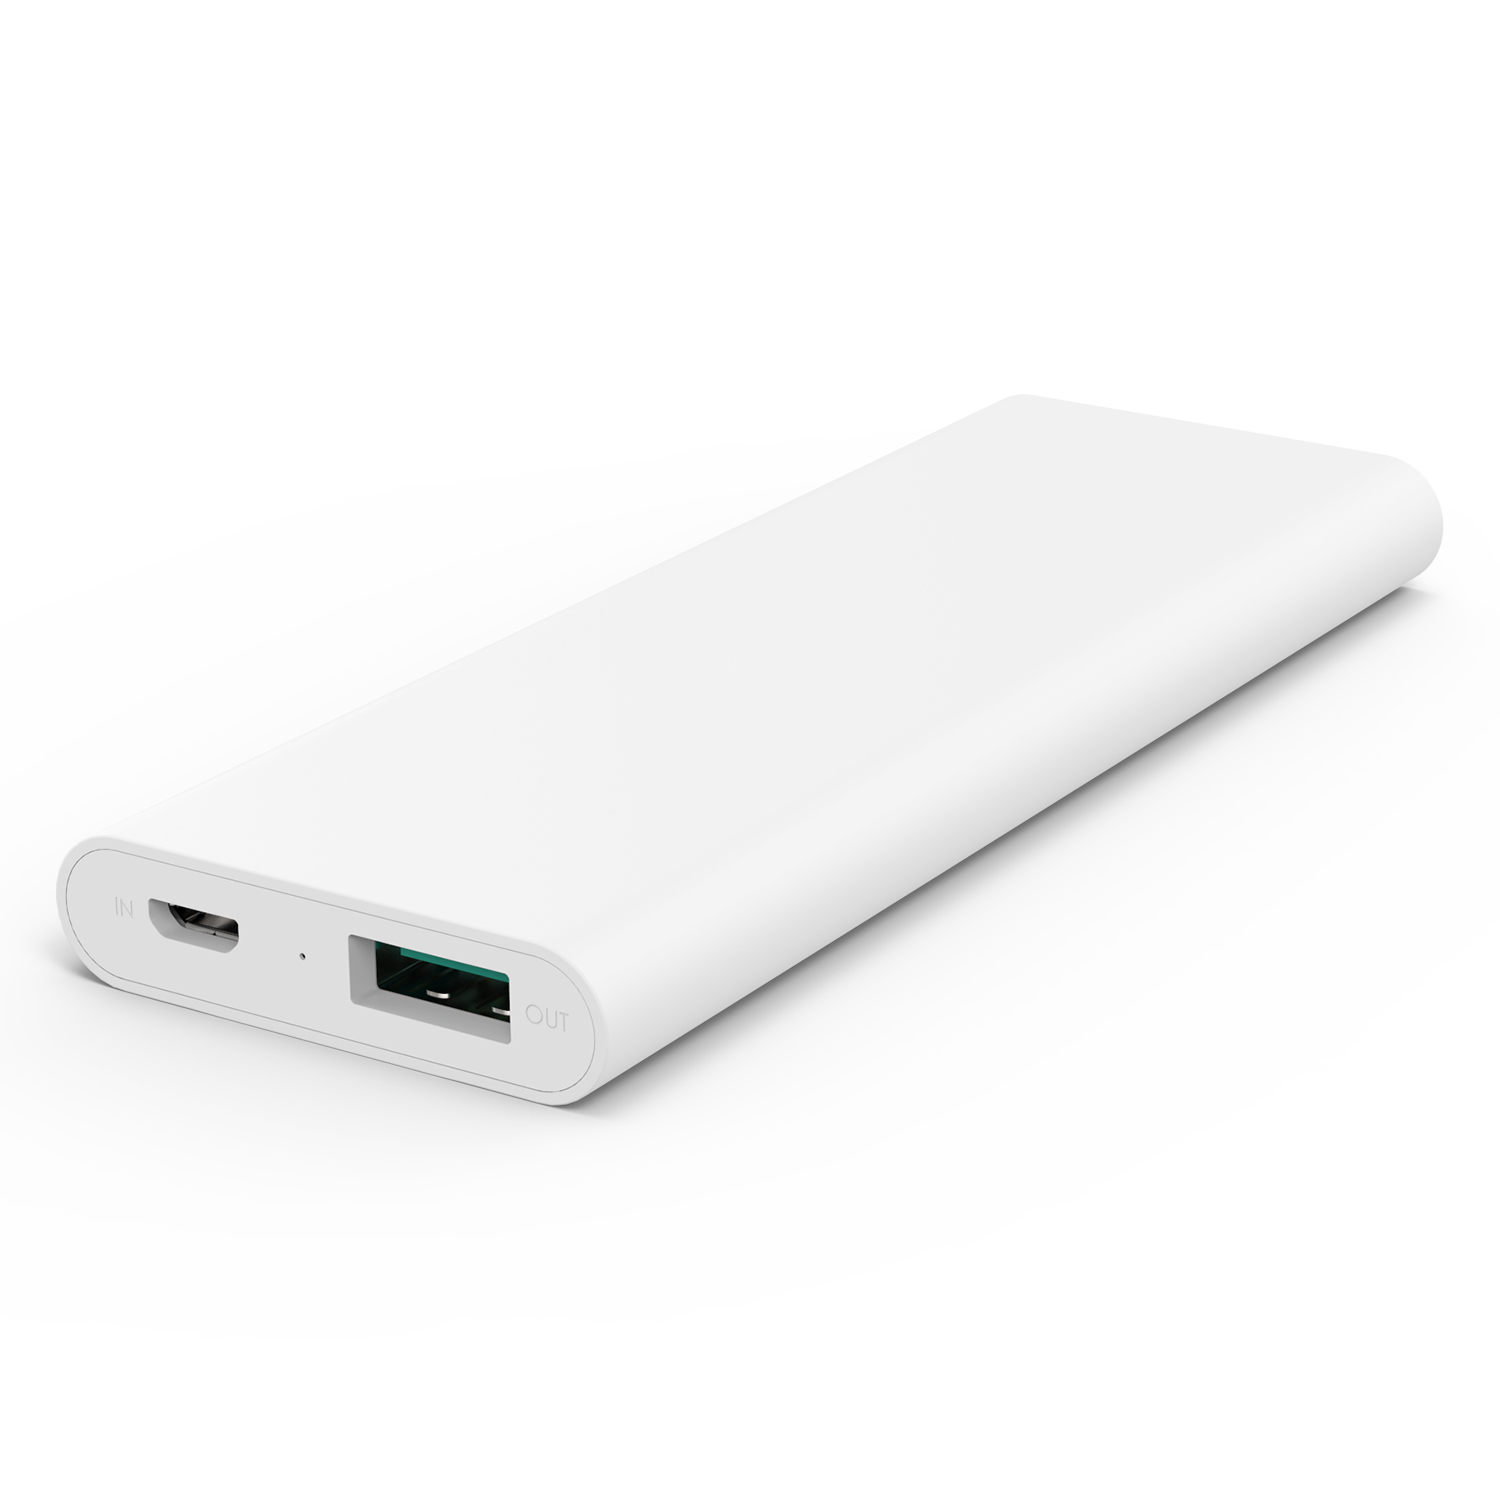 3600 mAh Slim Portable External Battery Pack White firefly PE-N26 1